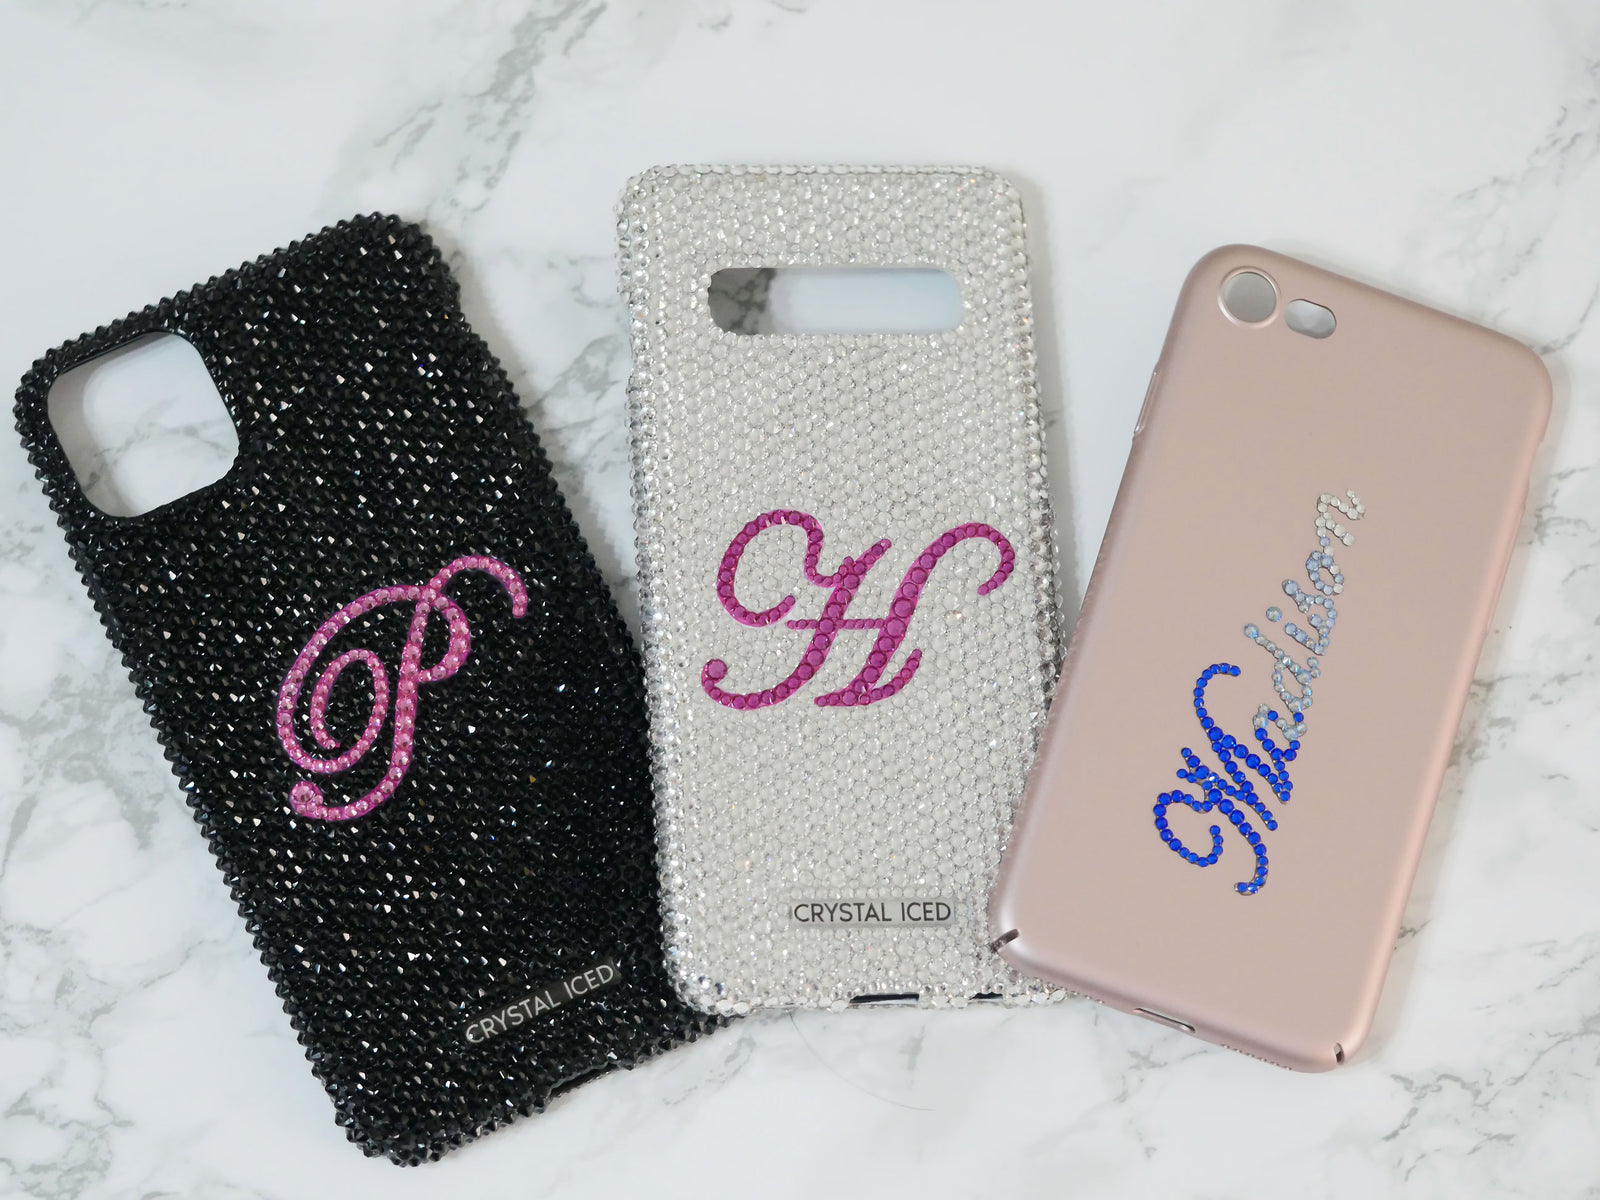 Huawei Mobile Phone Swarovski Crystal Cases